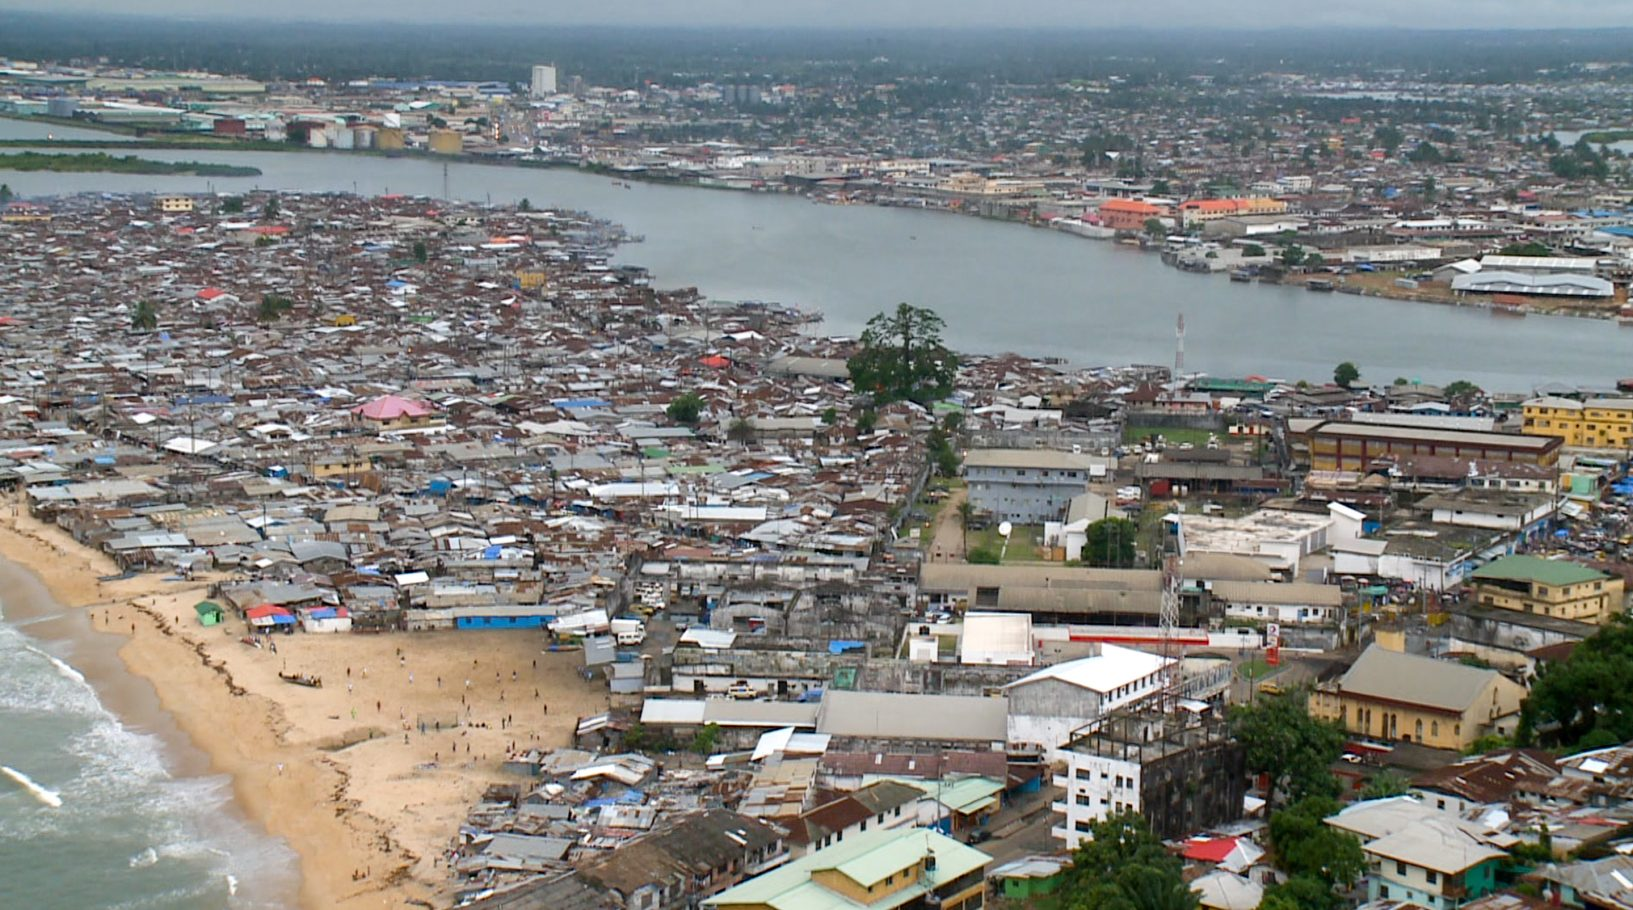 West Point slum, Monrovia